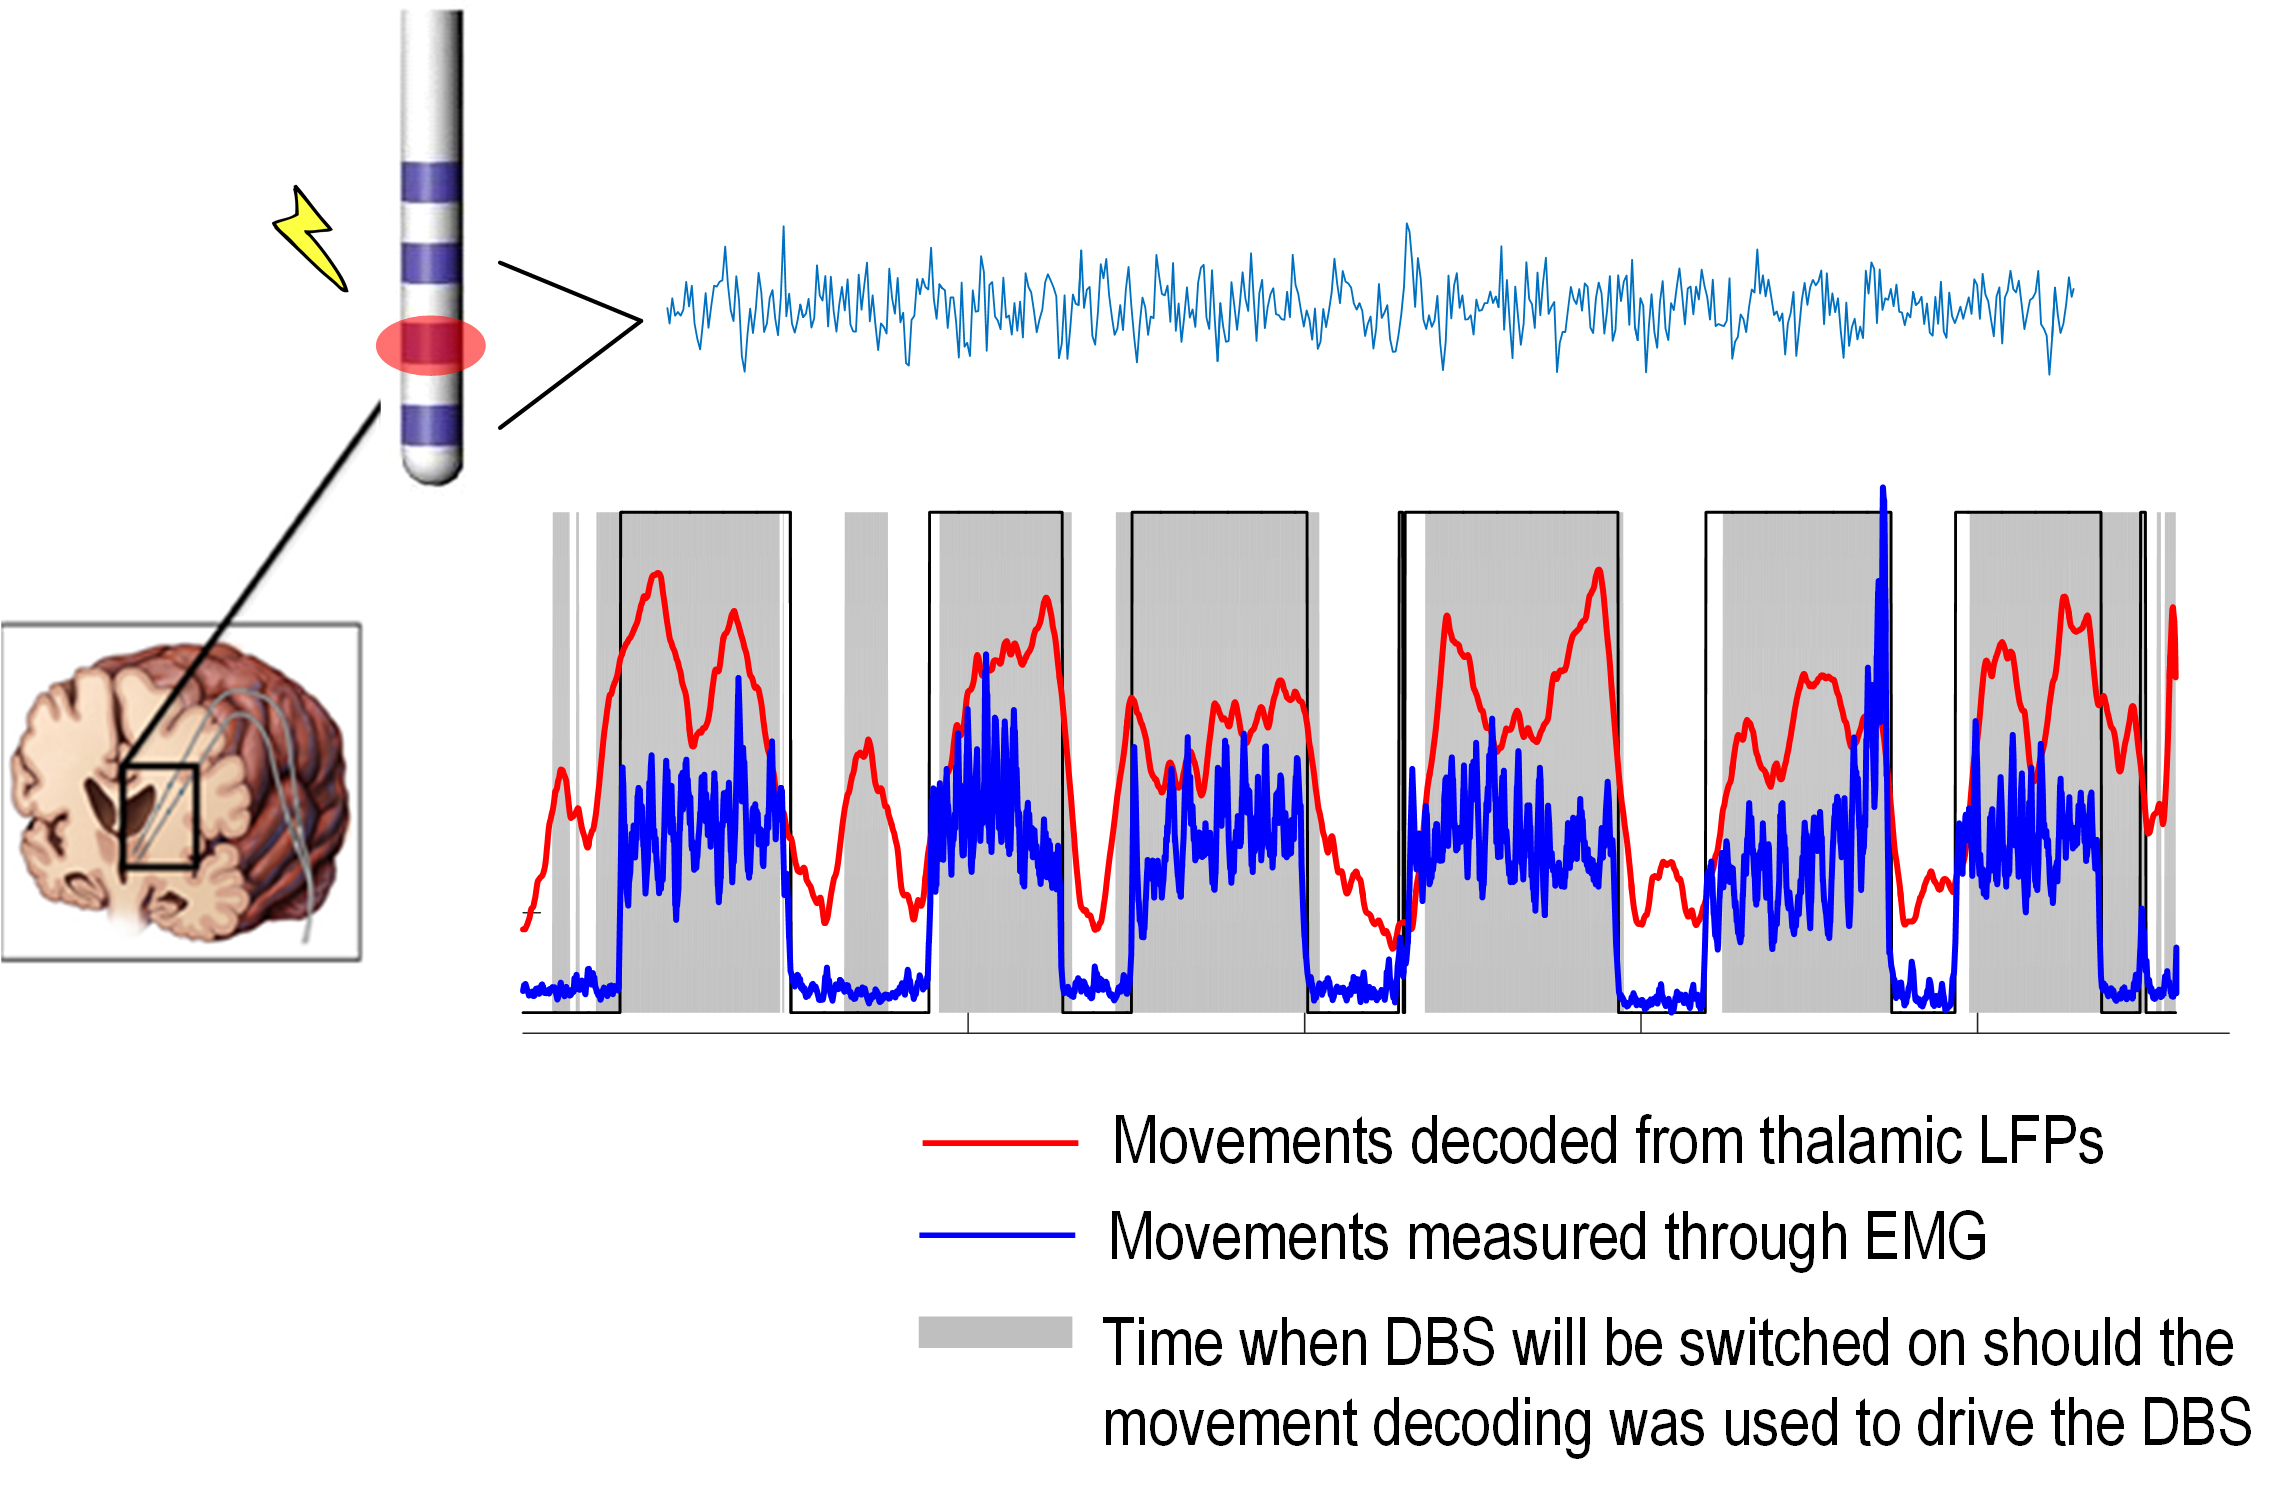 Local field potentials (LFPs) recorded from an electrode implanted in motor thalamus for therapeutic stimulation was used to identify whether the patient is making a voluntary movement or not. This matches very well the movements measured through muscle activities